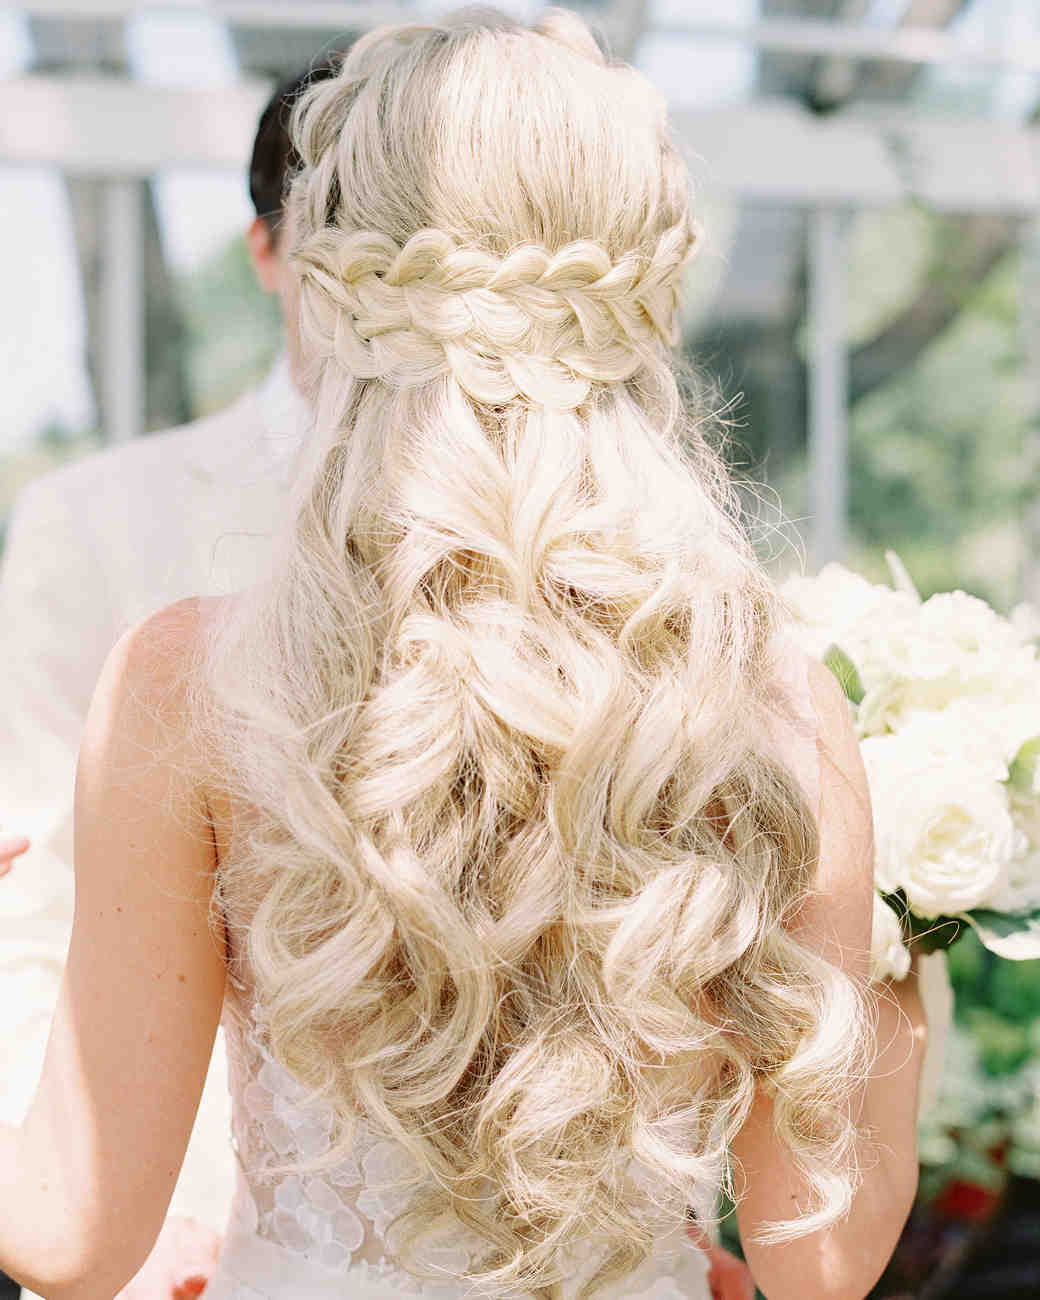 Hairstyle Ideas For Wedding: 28 Half-Up, Half-Down Wedding Hairstyles We Love